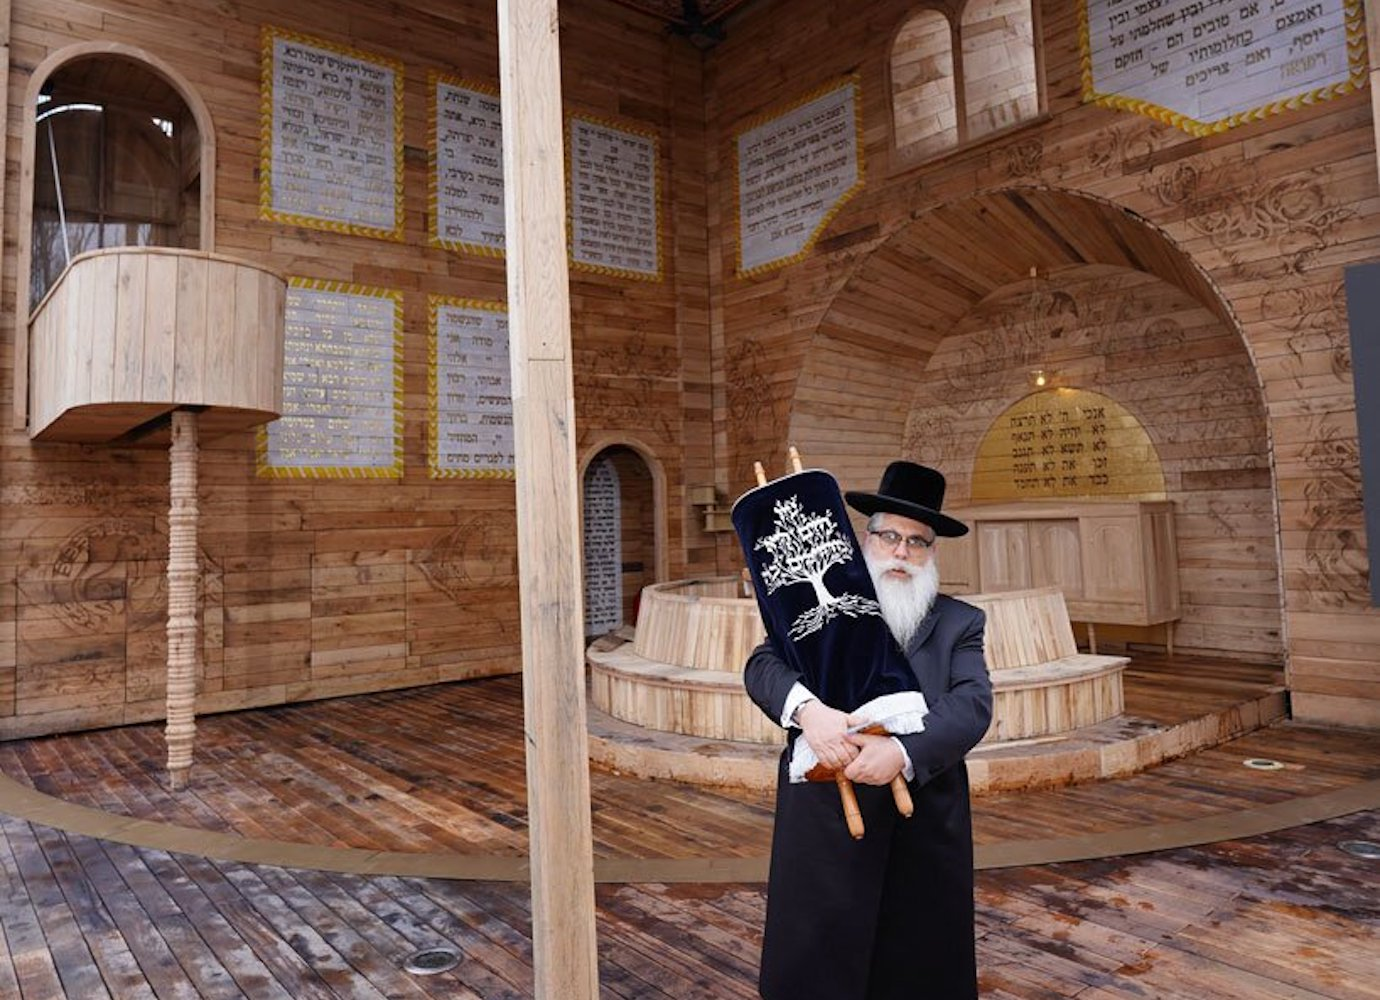 An innovative pop-up synagogue in Ukraine pays tribute to Jewish communities